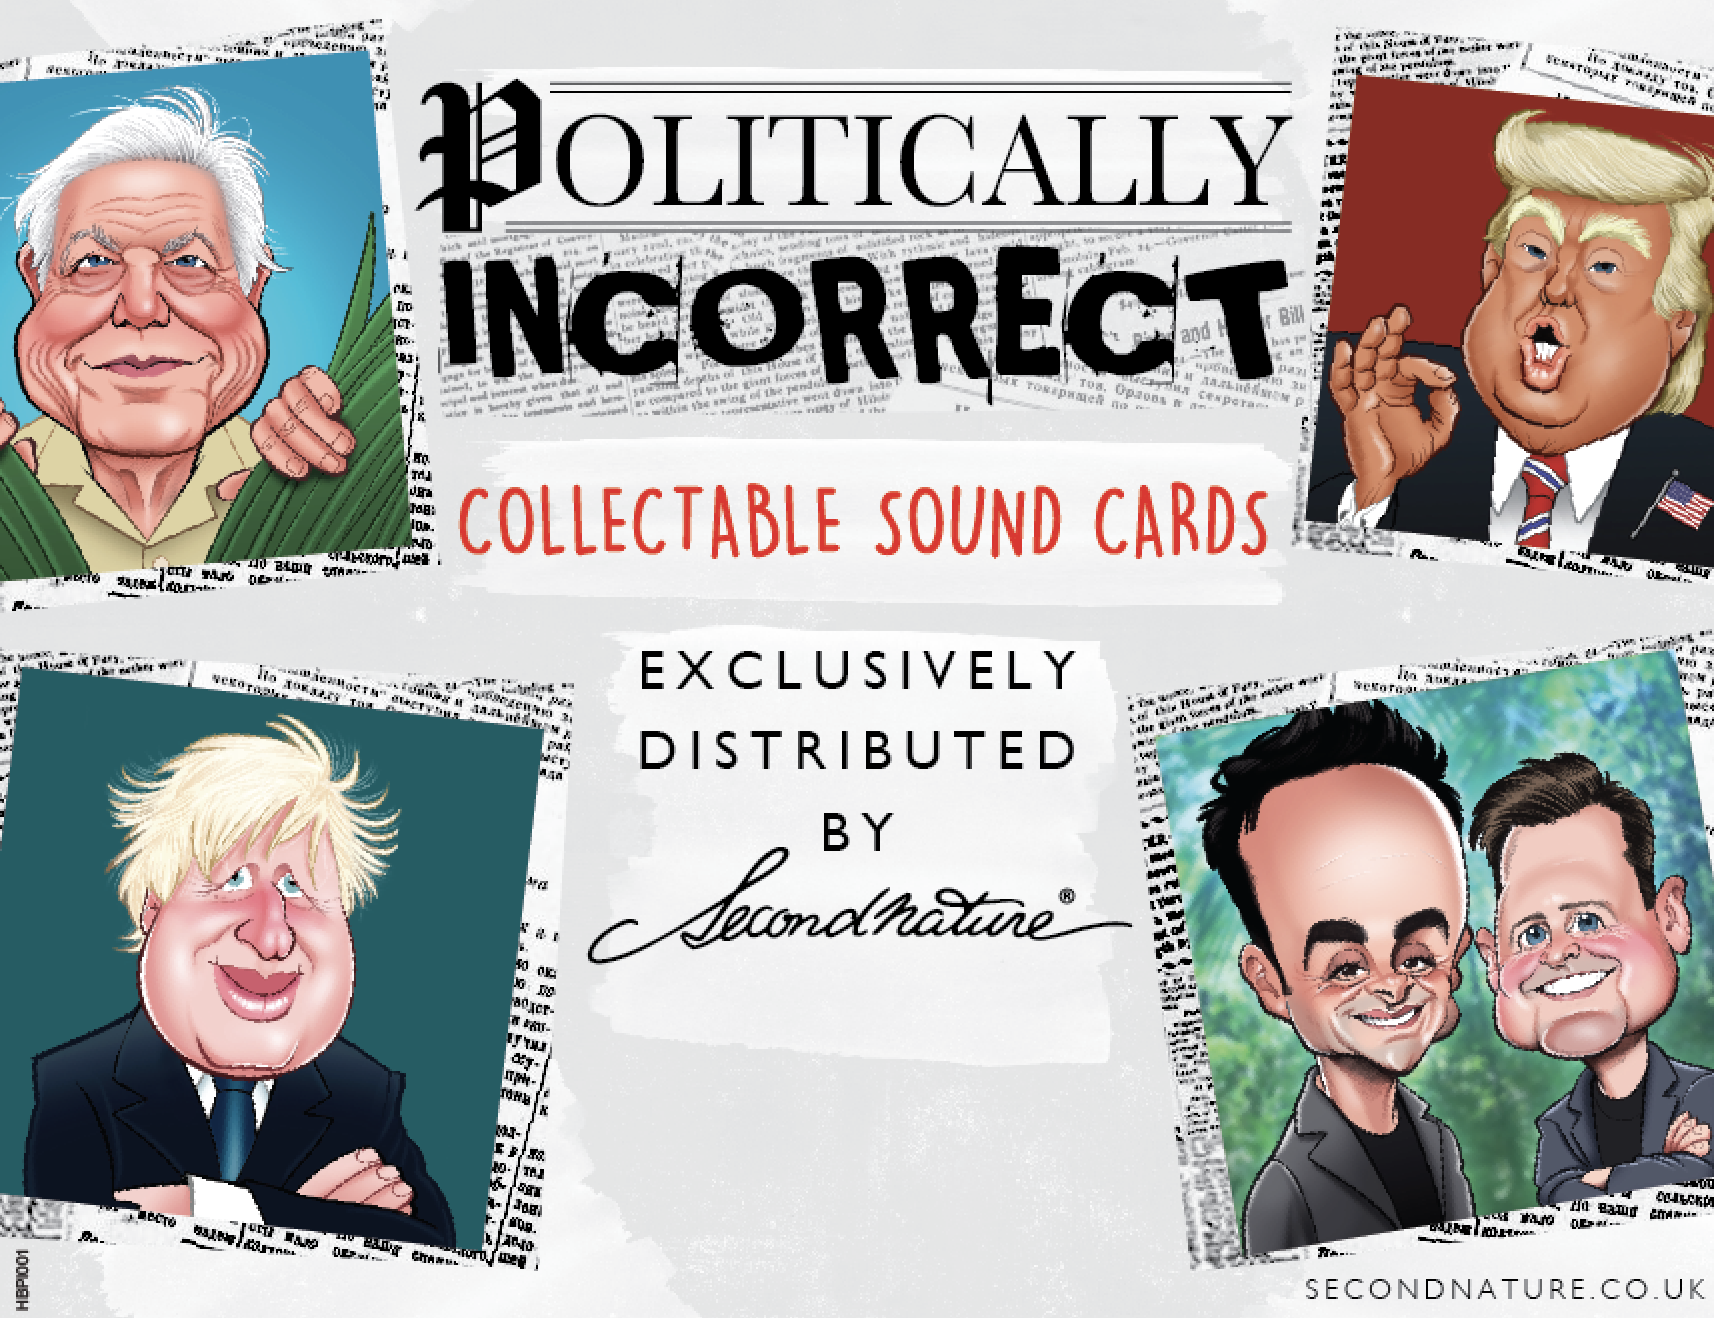 Above: The Politically Incorrect cards are being dual-branded Really Wild Cards as well as Second Nature.